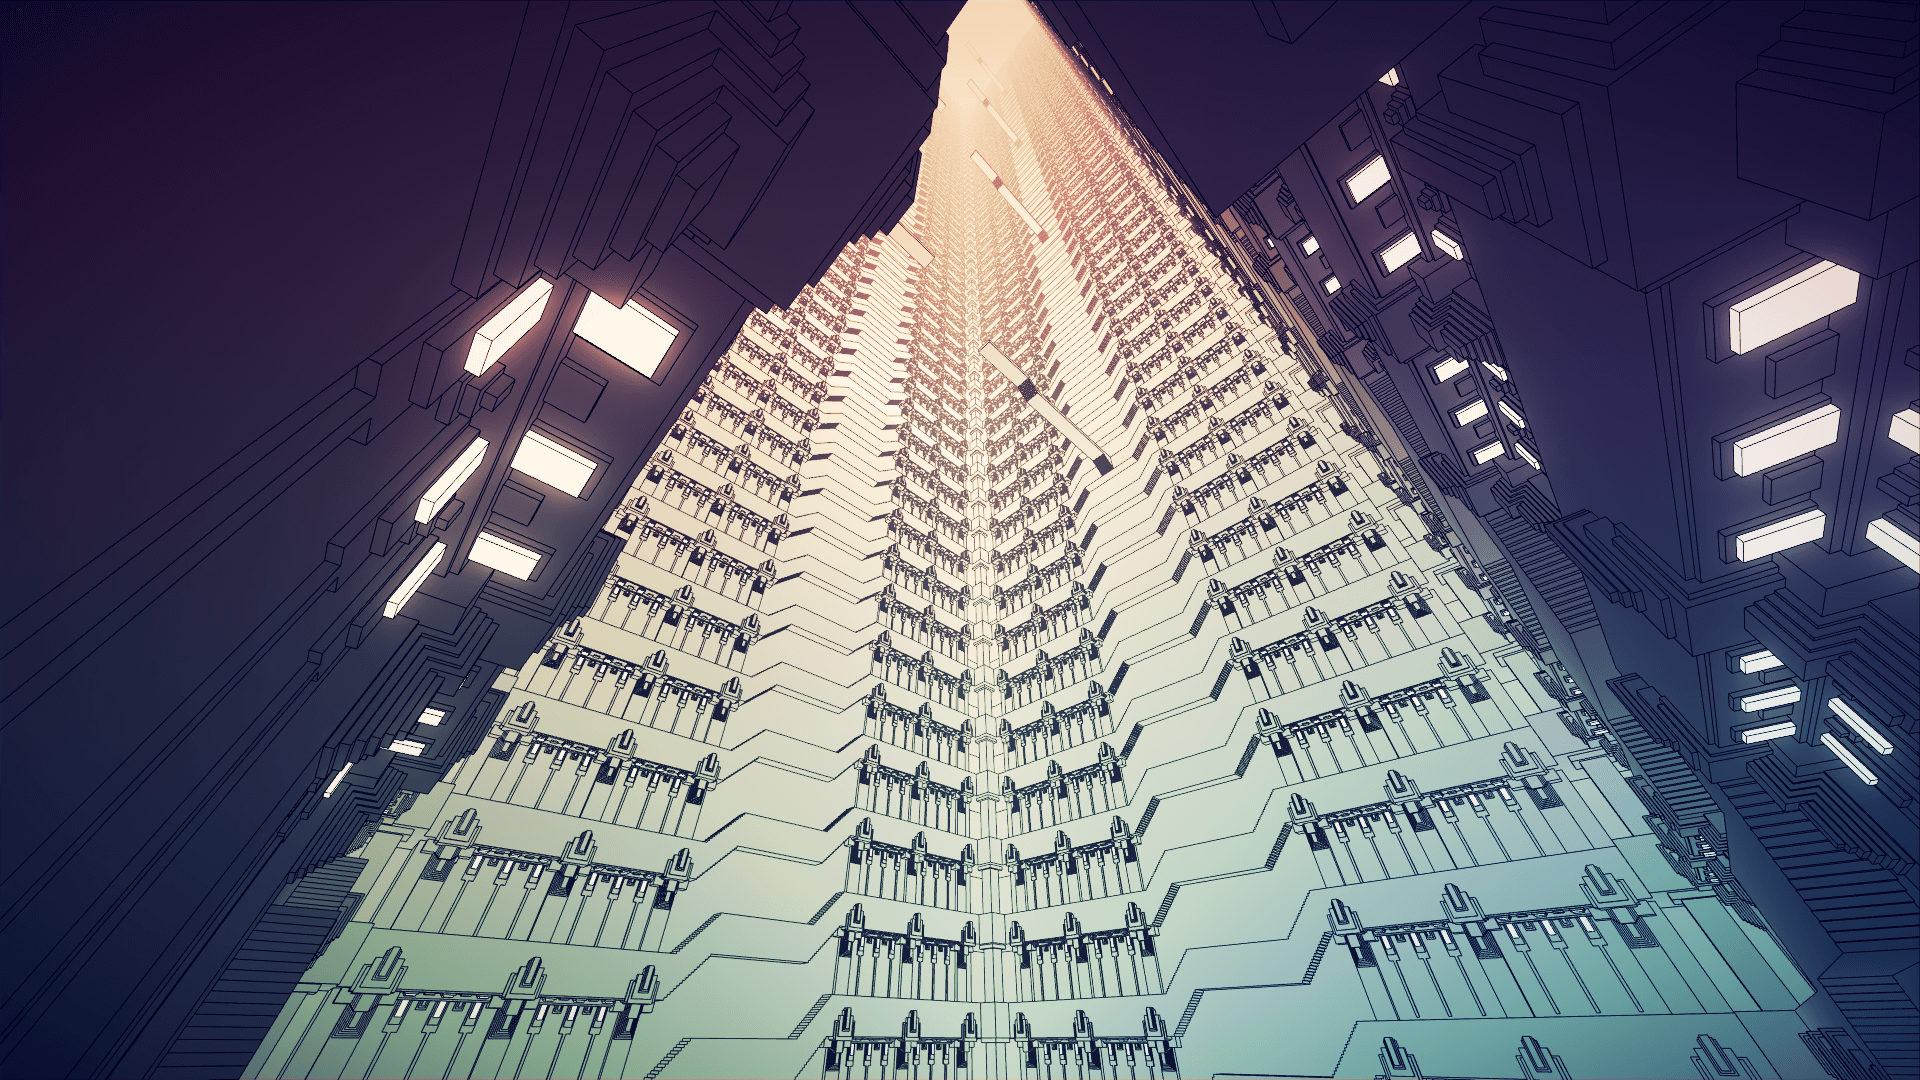 Manifold Garden is Now Available on Steam